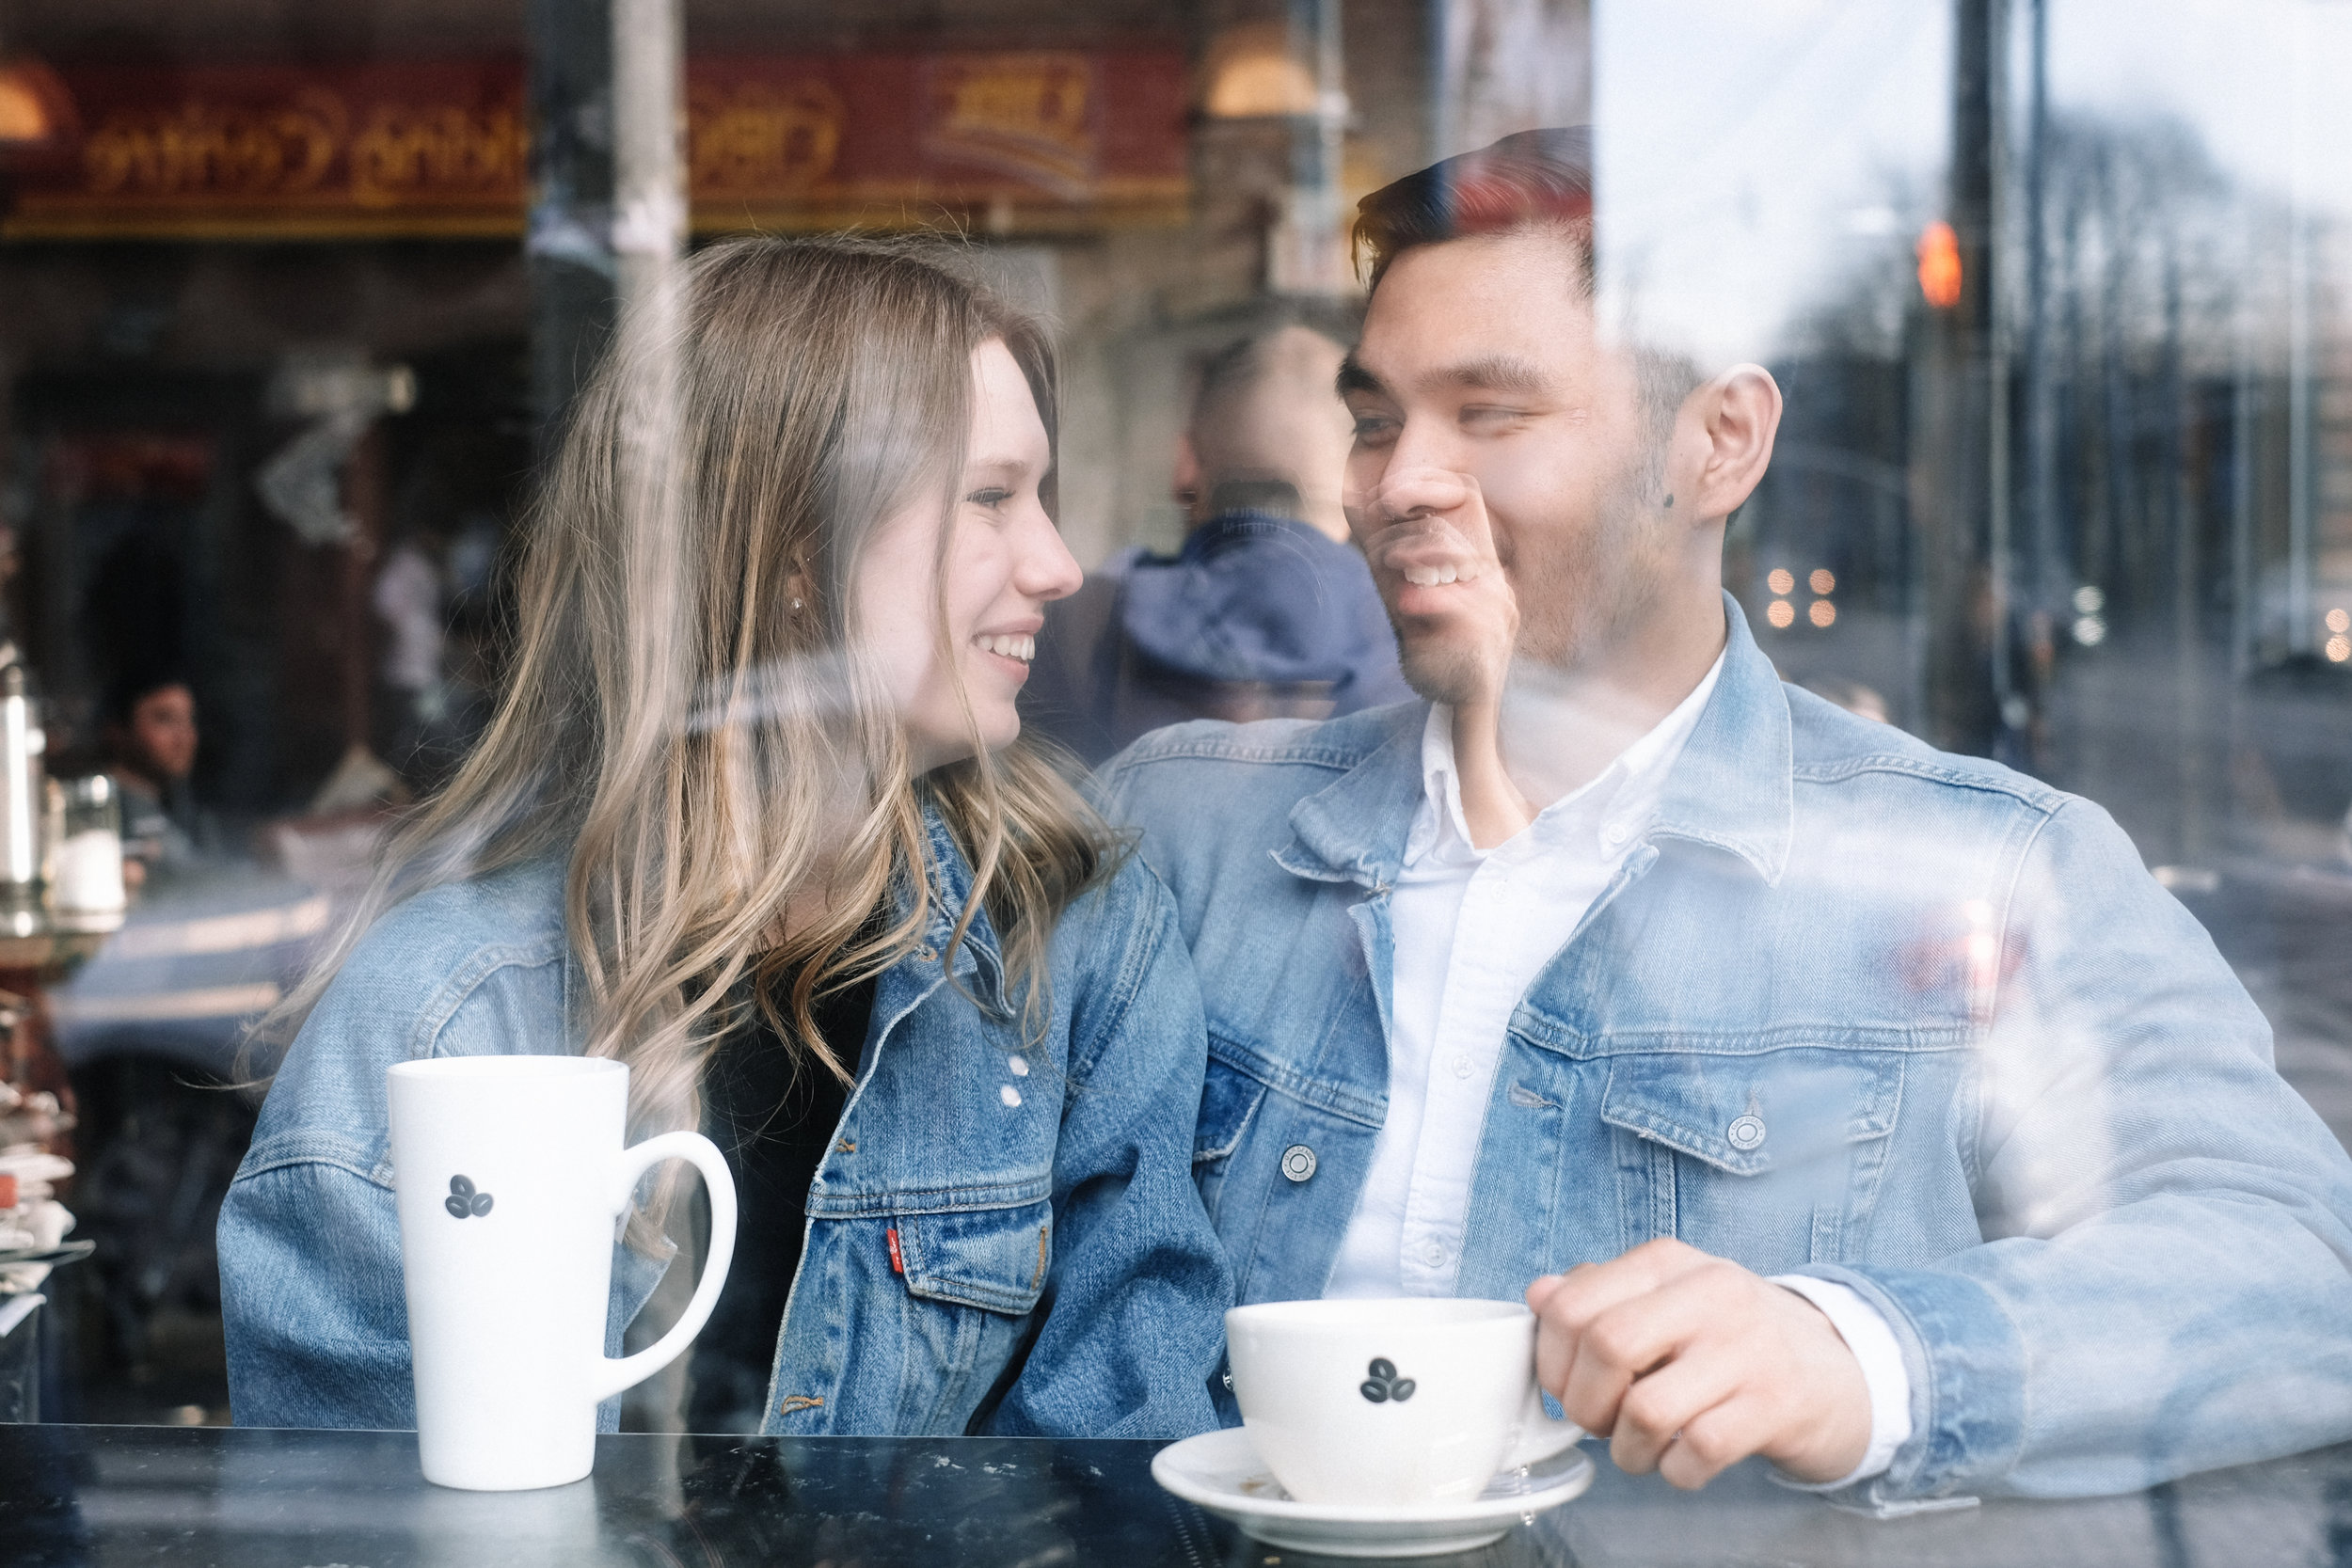 Proposal and engagement at a toronto coffee shop